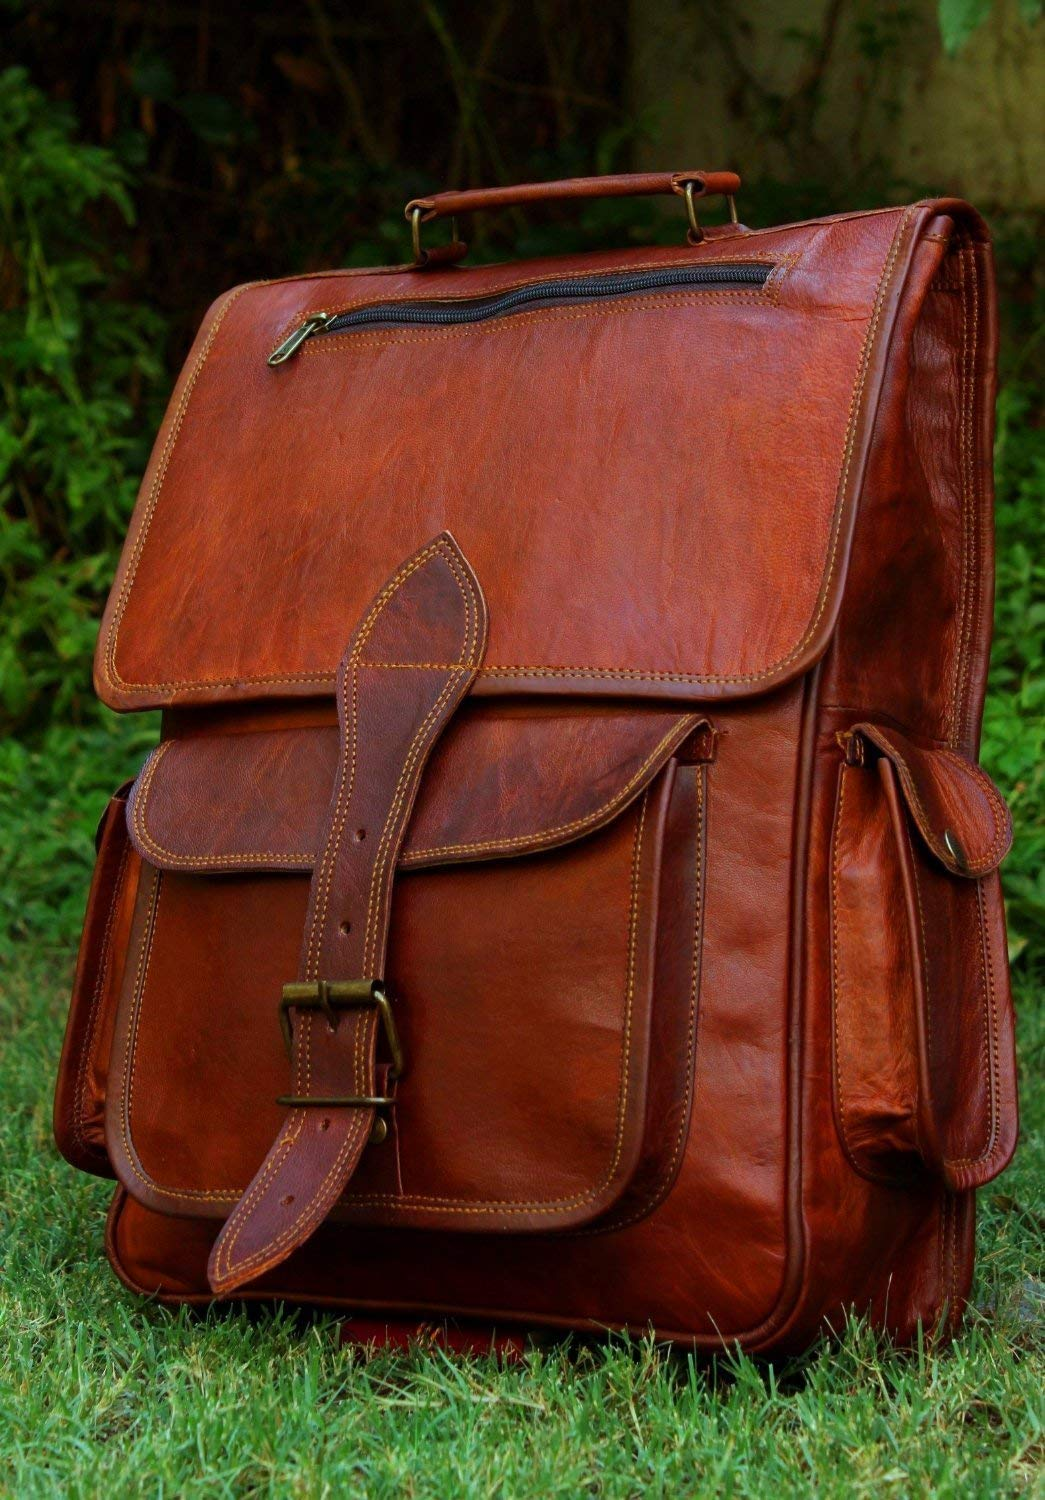 16 Inch Genuine Leather Retro Rucksack Backpack Bag , Picnic Bag Travel by cuero